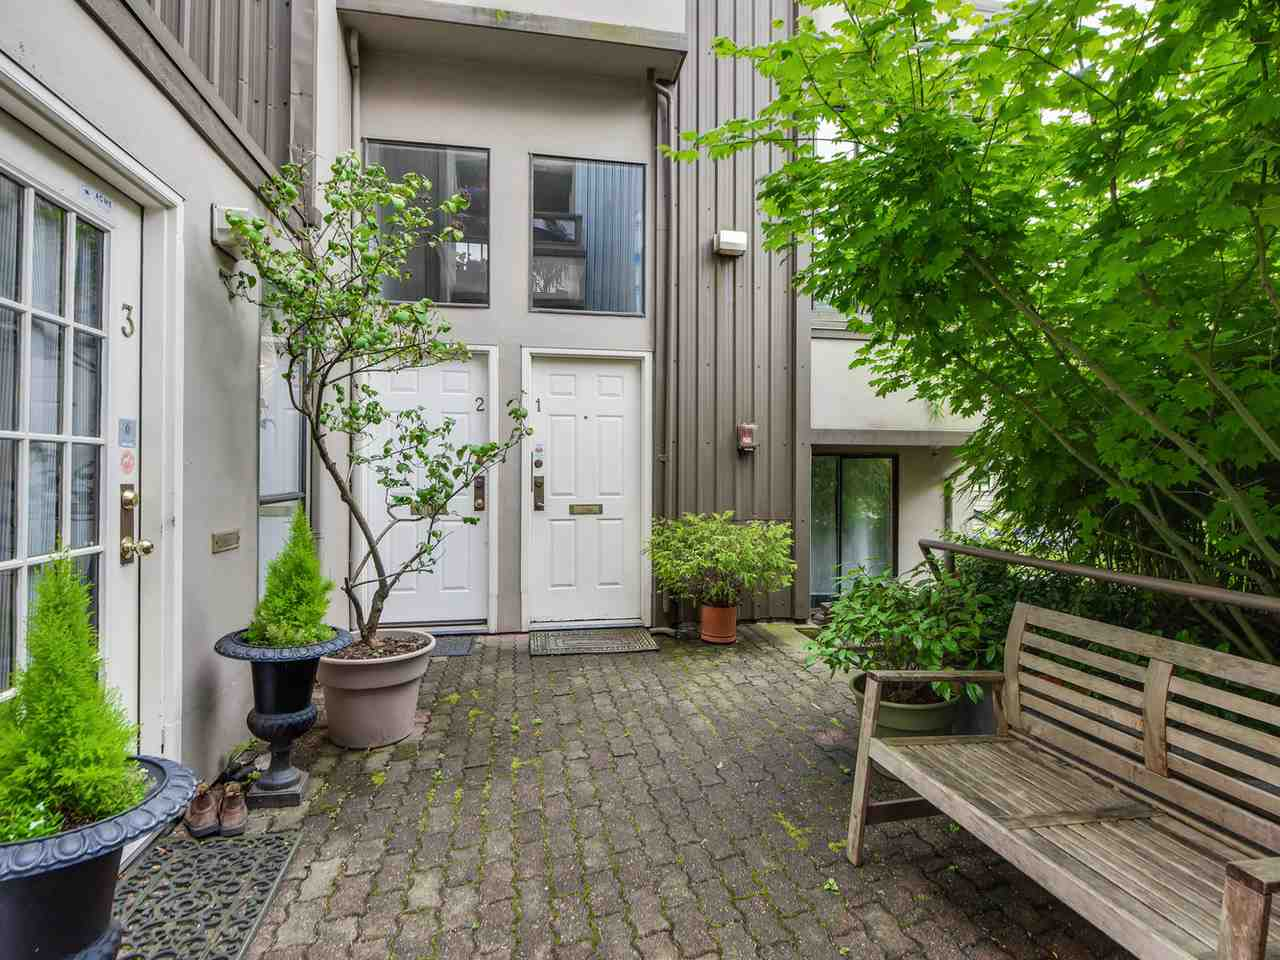 Photo 19: 3 1549 HARO Street in Vancouver: West End VW Townhouse for sale (Vancouver West)  : MLS® # R2089499